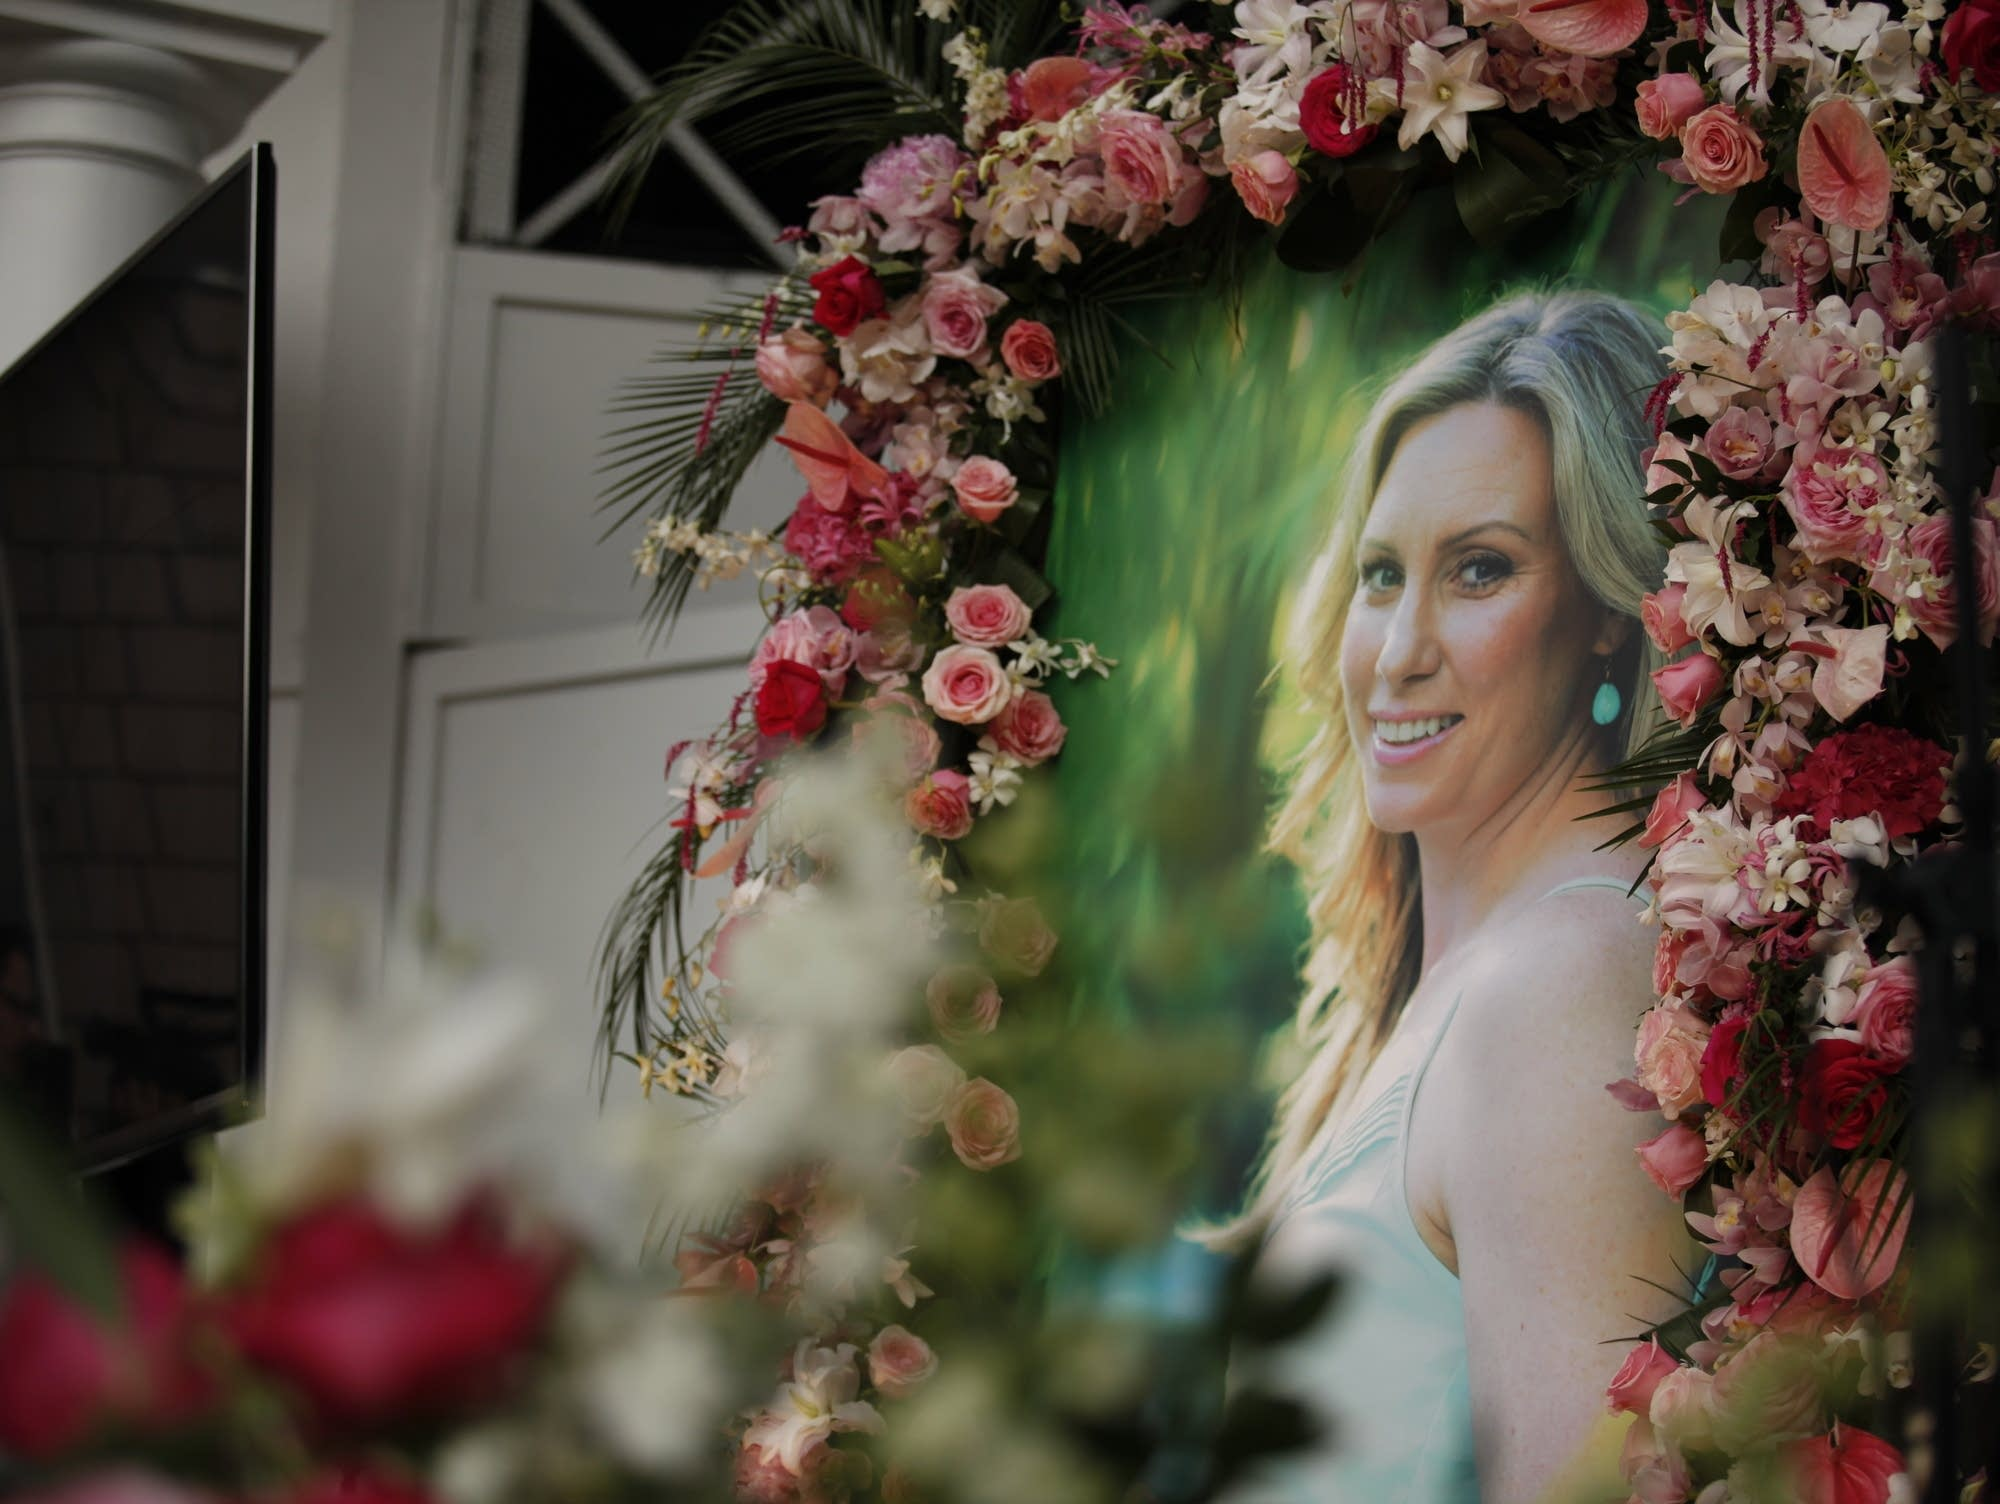 BCA Completes Investigation Into Justine Damond Shooting